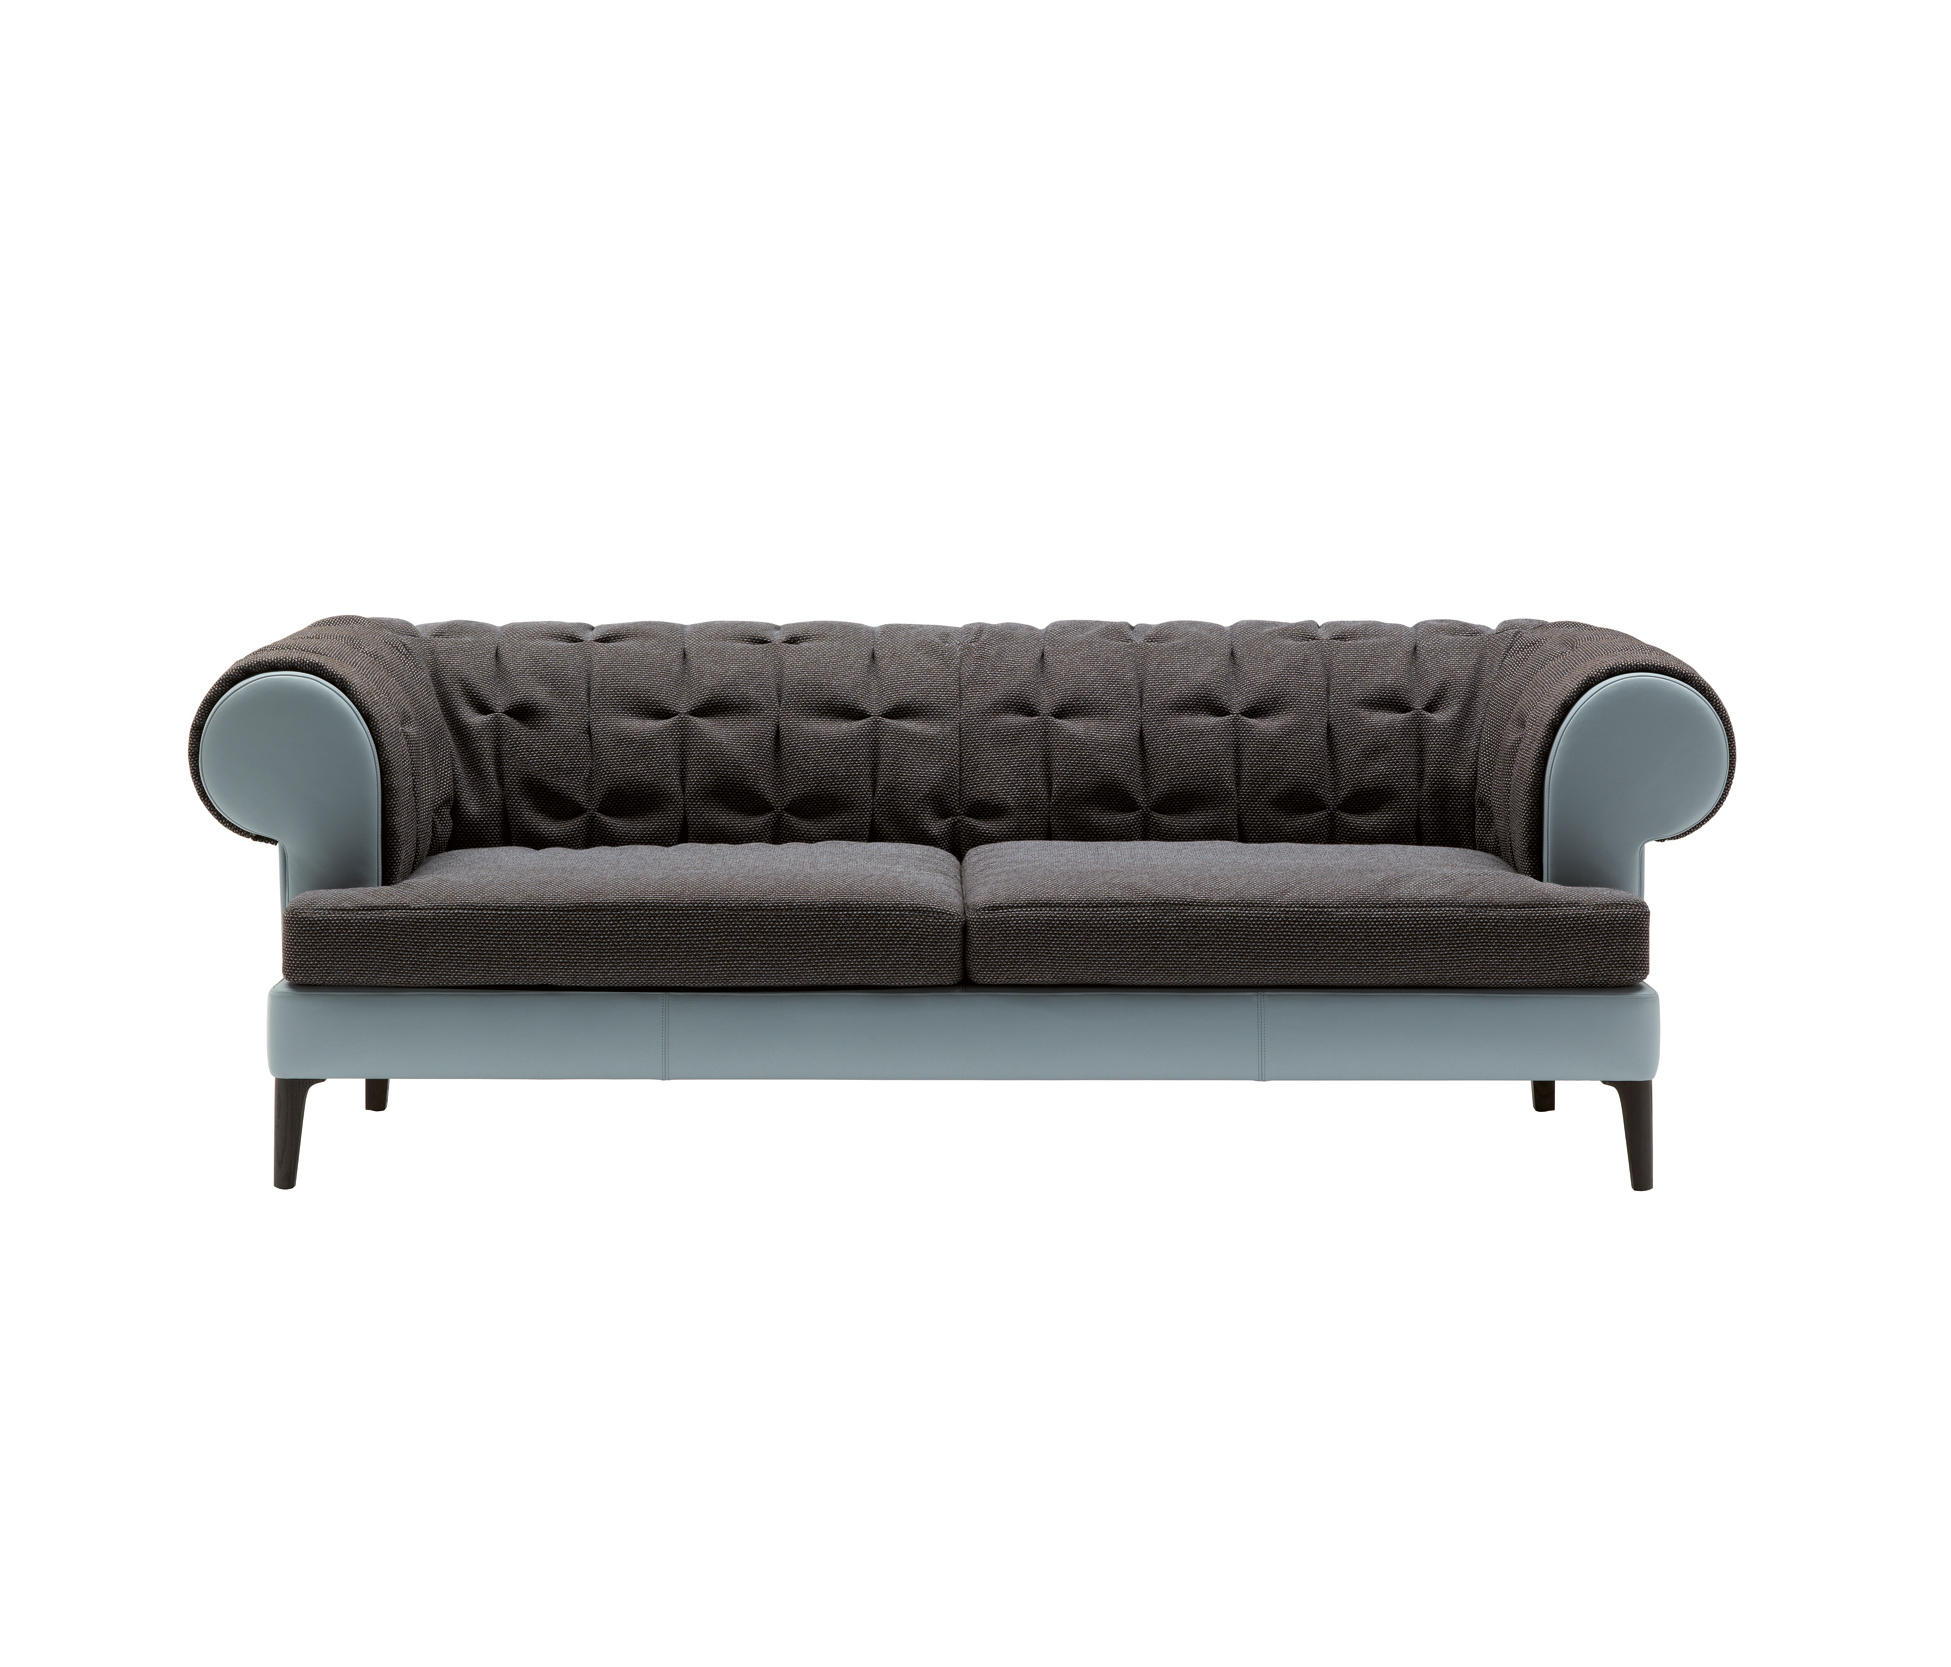 poltrona frau sofa kennedee best material for big dogs mantÒ sofas from architonic